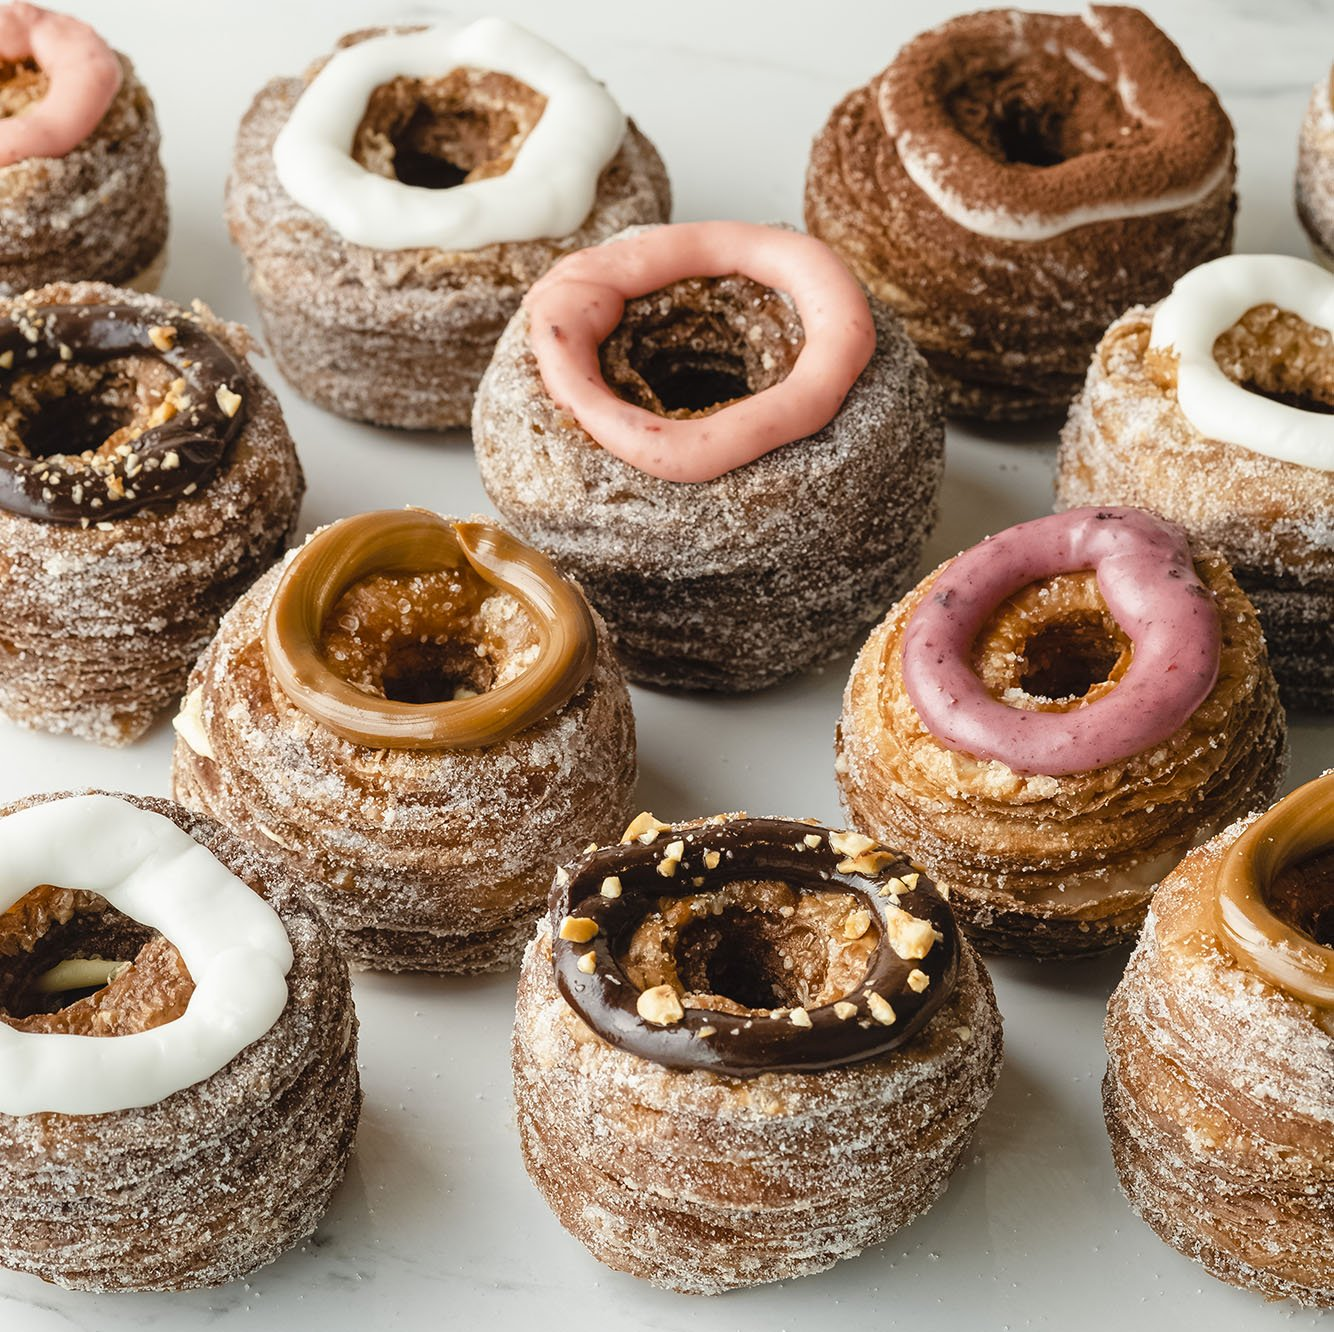 Set of assorted cronut dessert pastry topped with dulce de leche, tiramisu, vanilla, strawberry, hazelnut, and mixed berry icing.